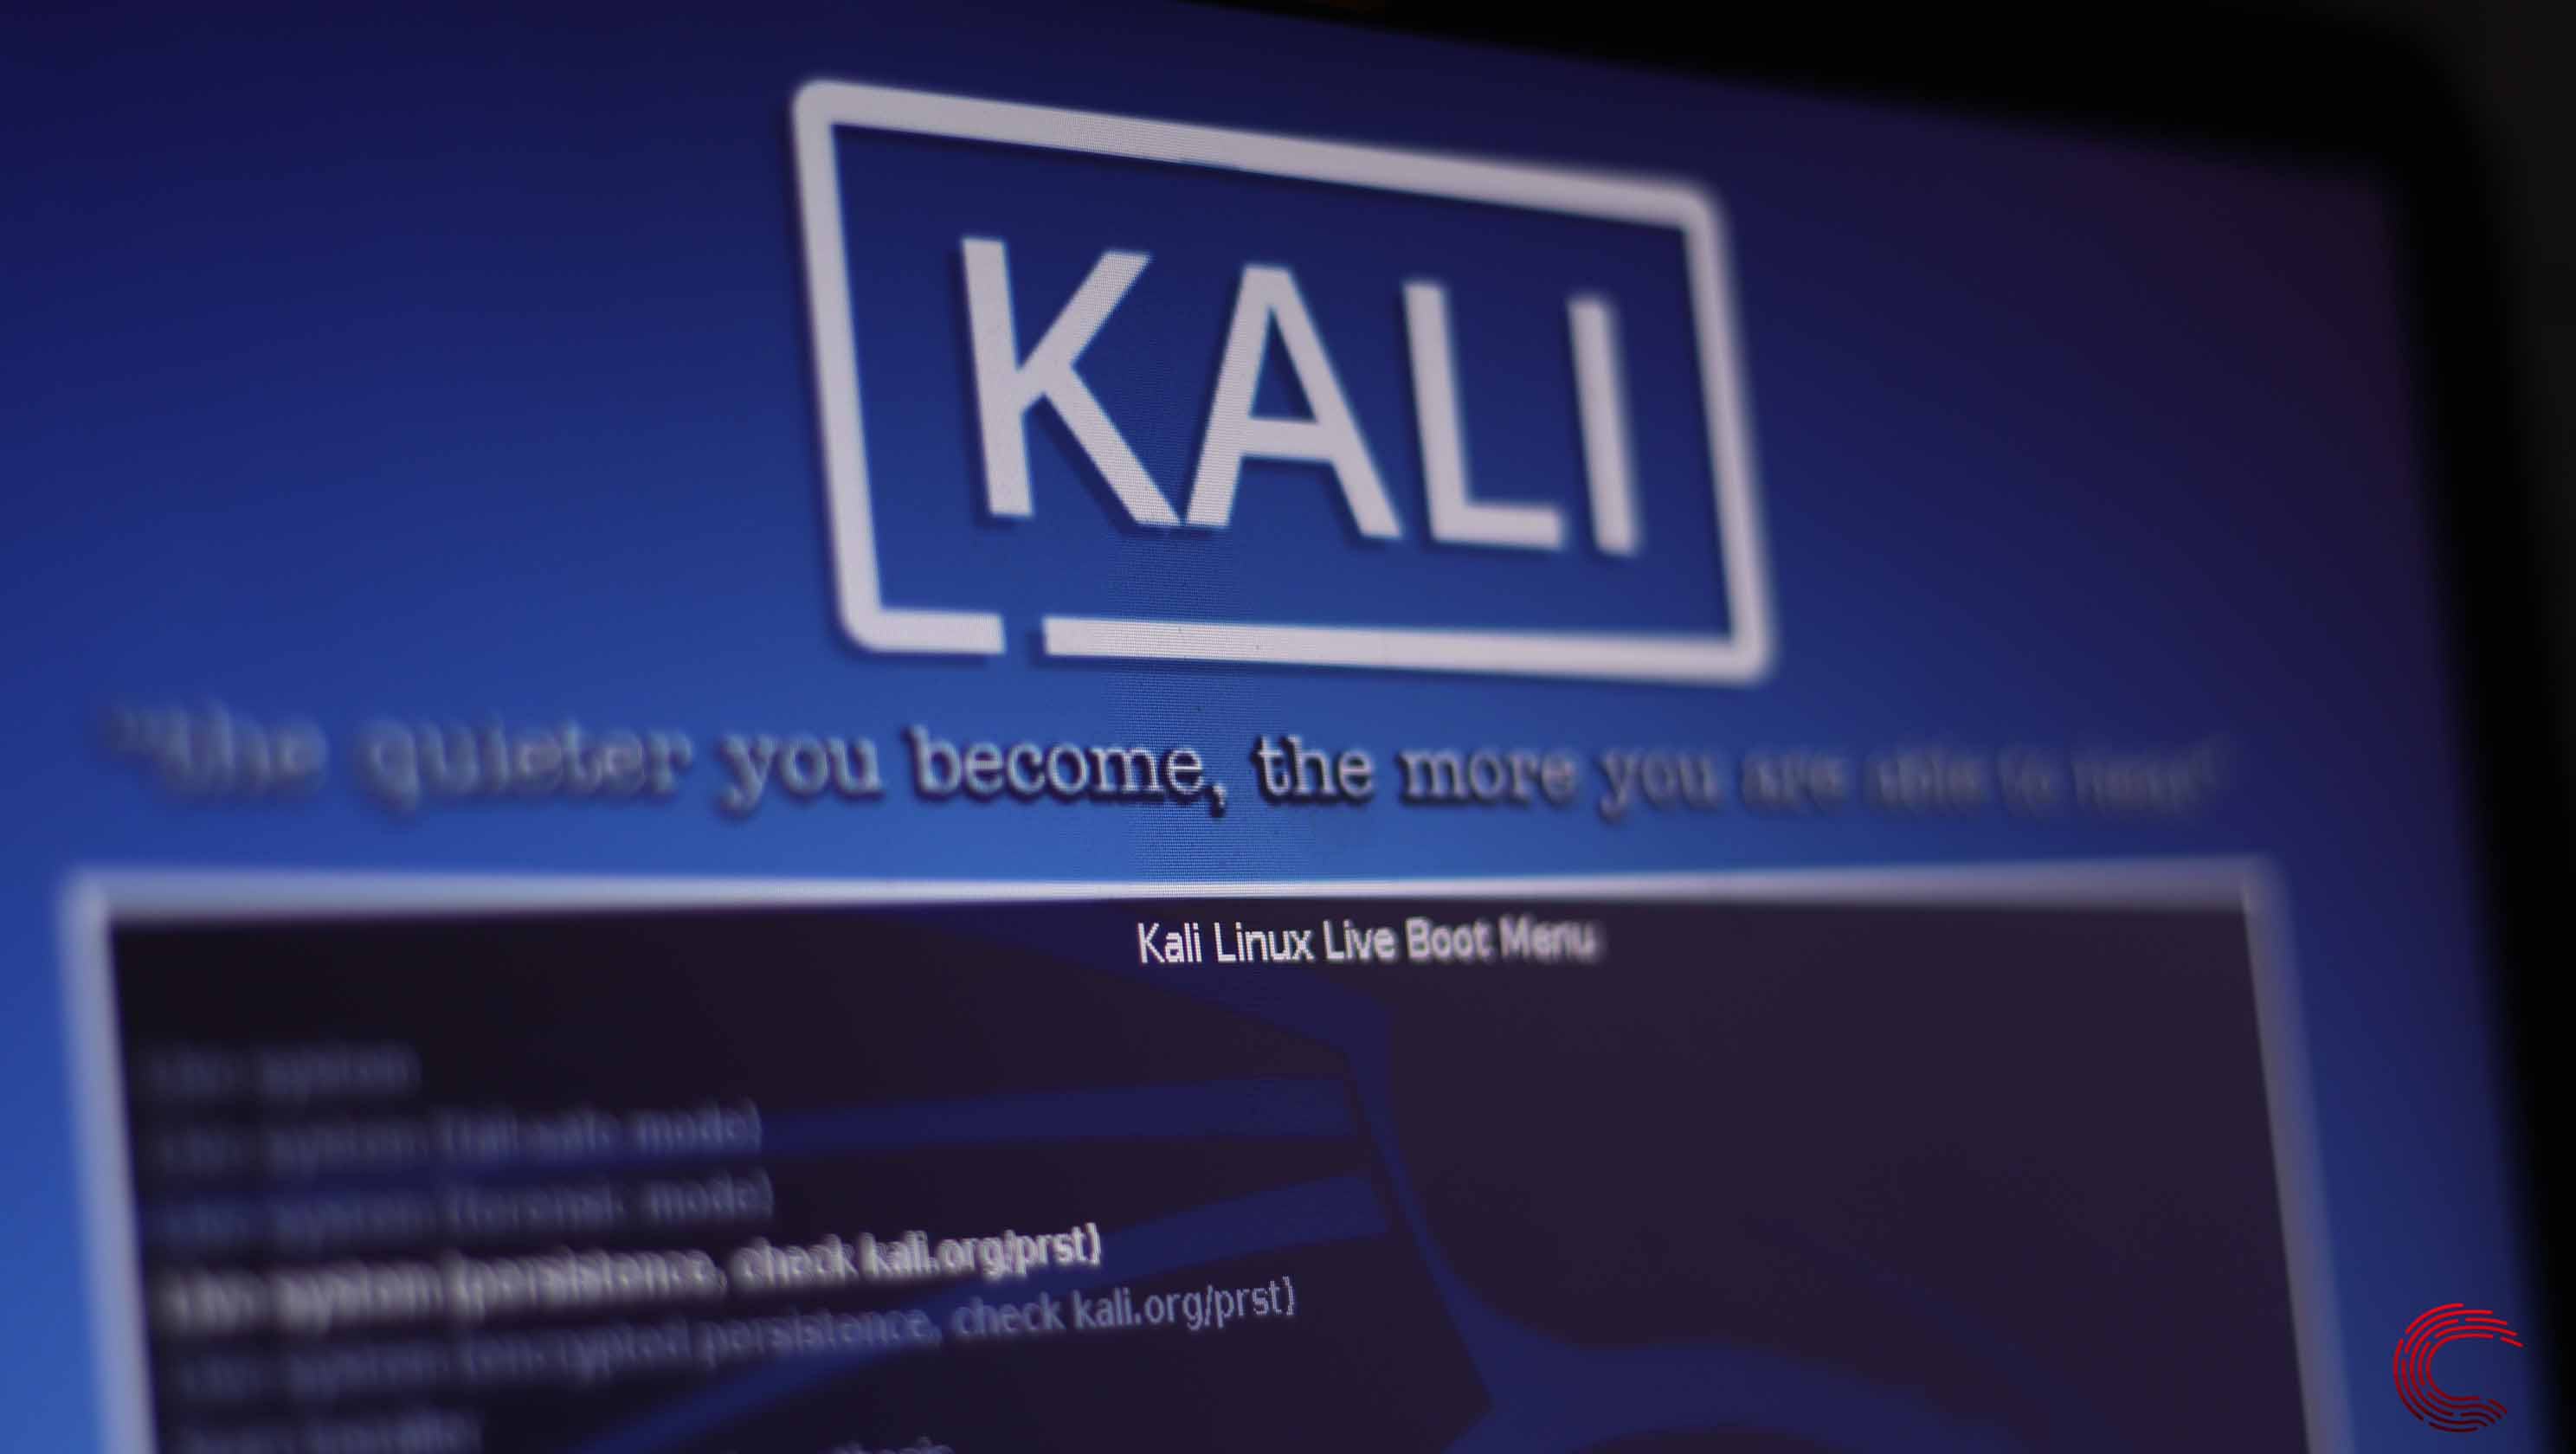 How to update Kali Linux? Everything you need to know